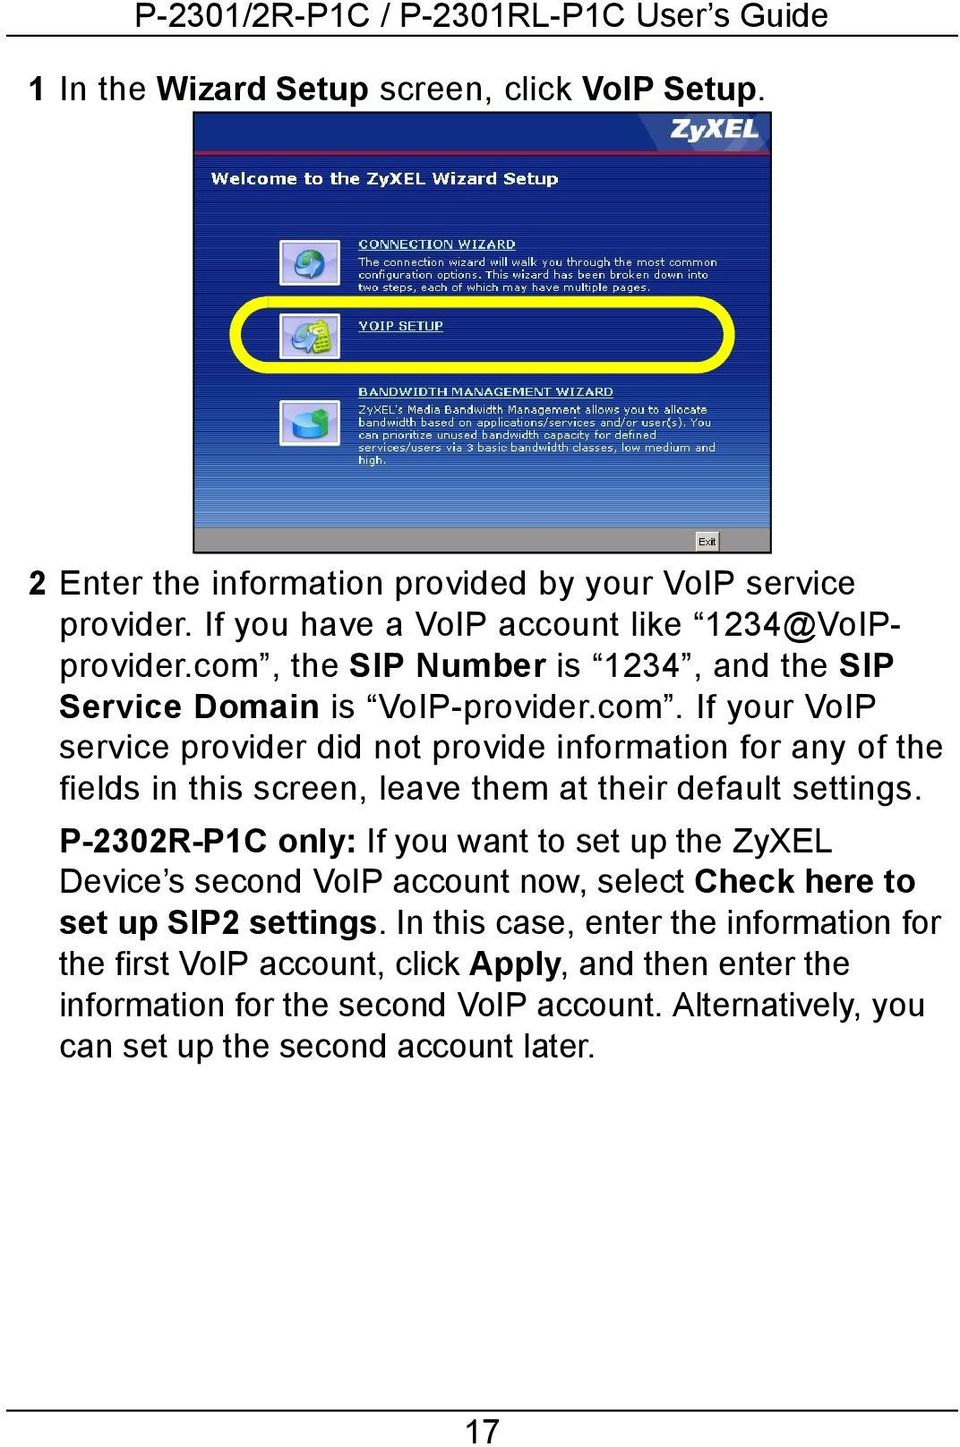 P-2302R-P1C only: If you want to set up the ZyXEL Device s second VoIP account now, select Check here to set up SIP2 settings.